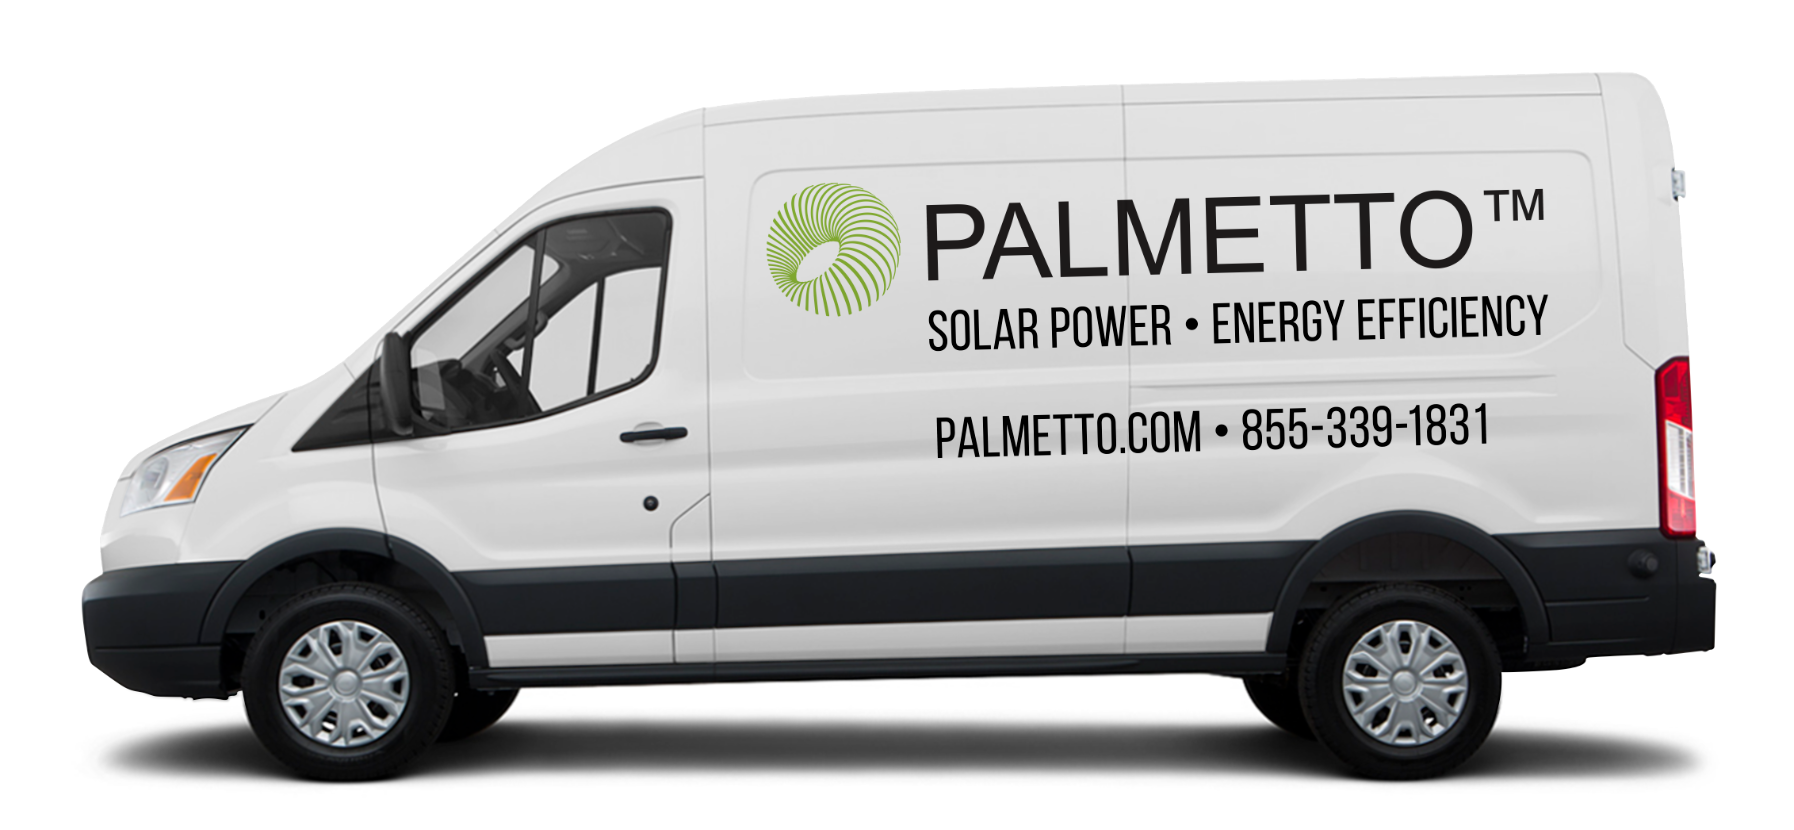 Palmetto coupon code